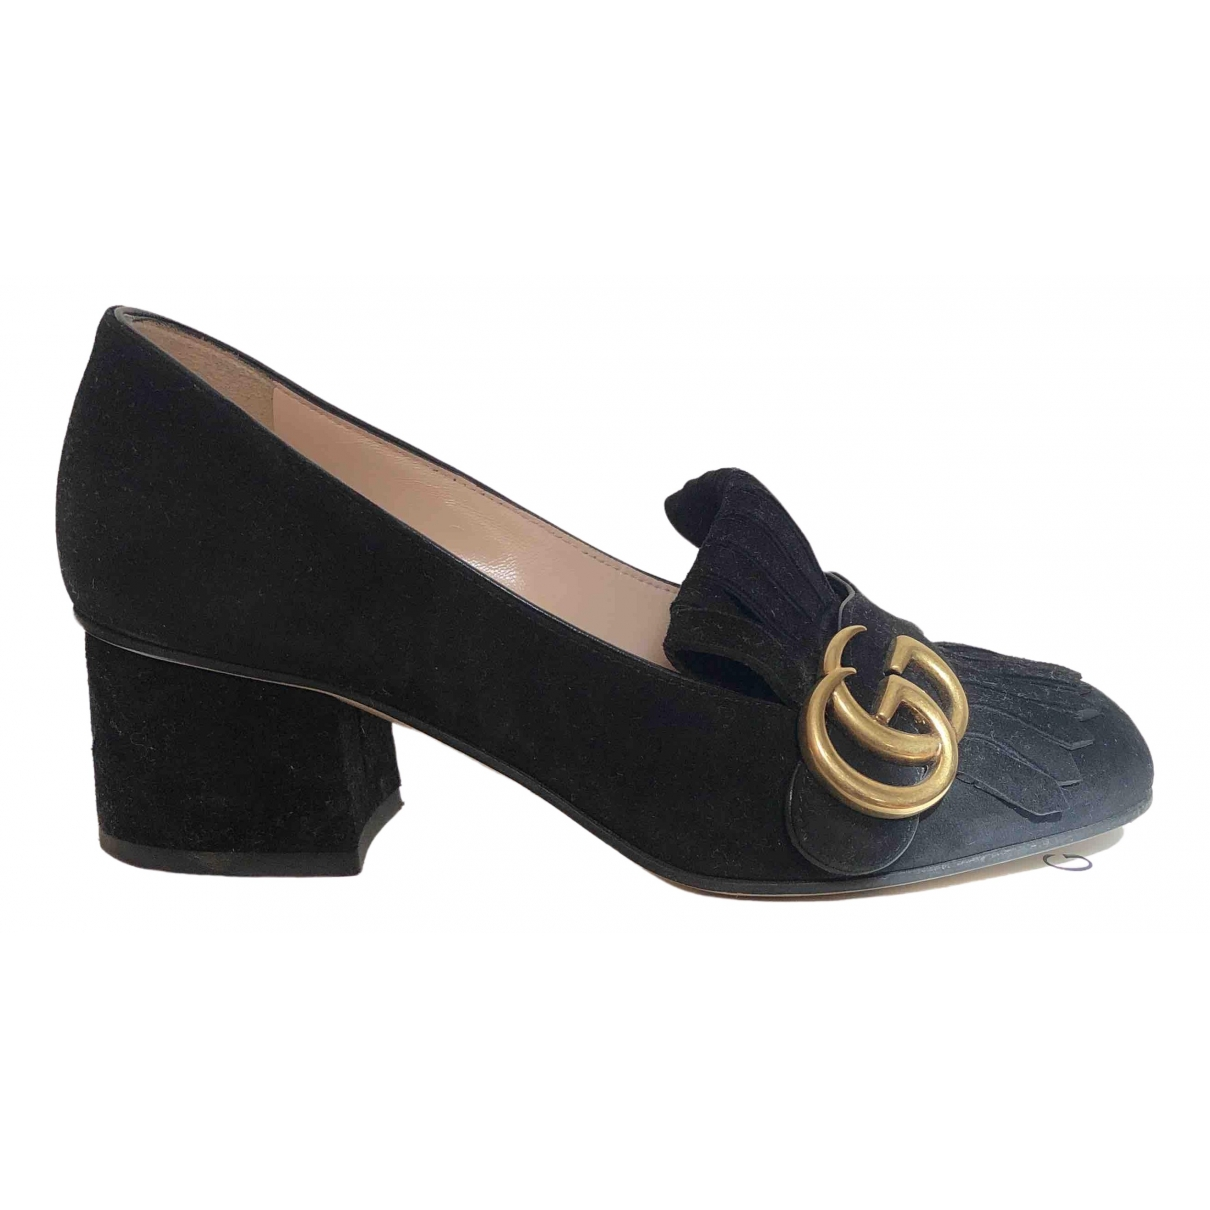 Gucci Marmont Black Leather Flats for Women 34.5 EU